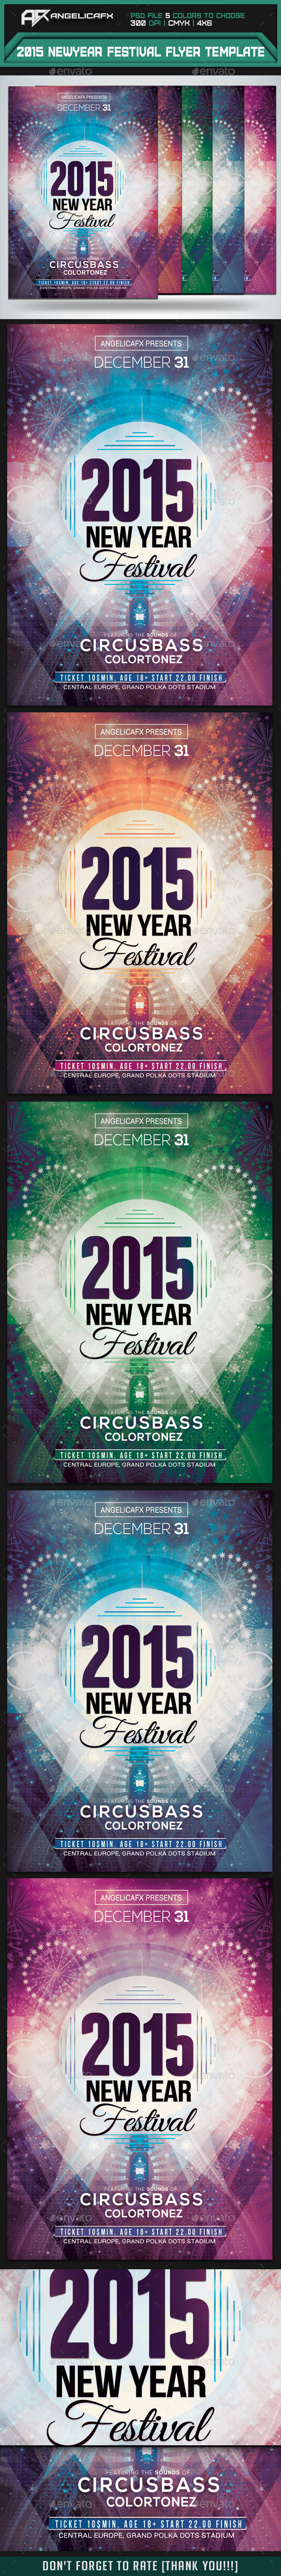 2015 New Year Festival Flyer Template - Events Flyers